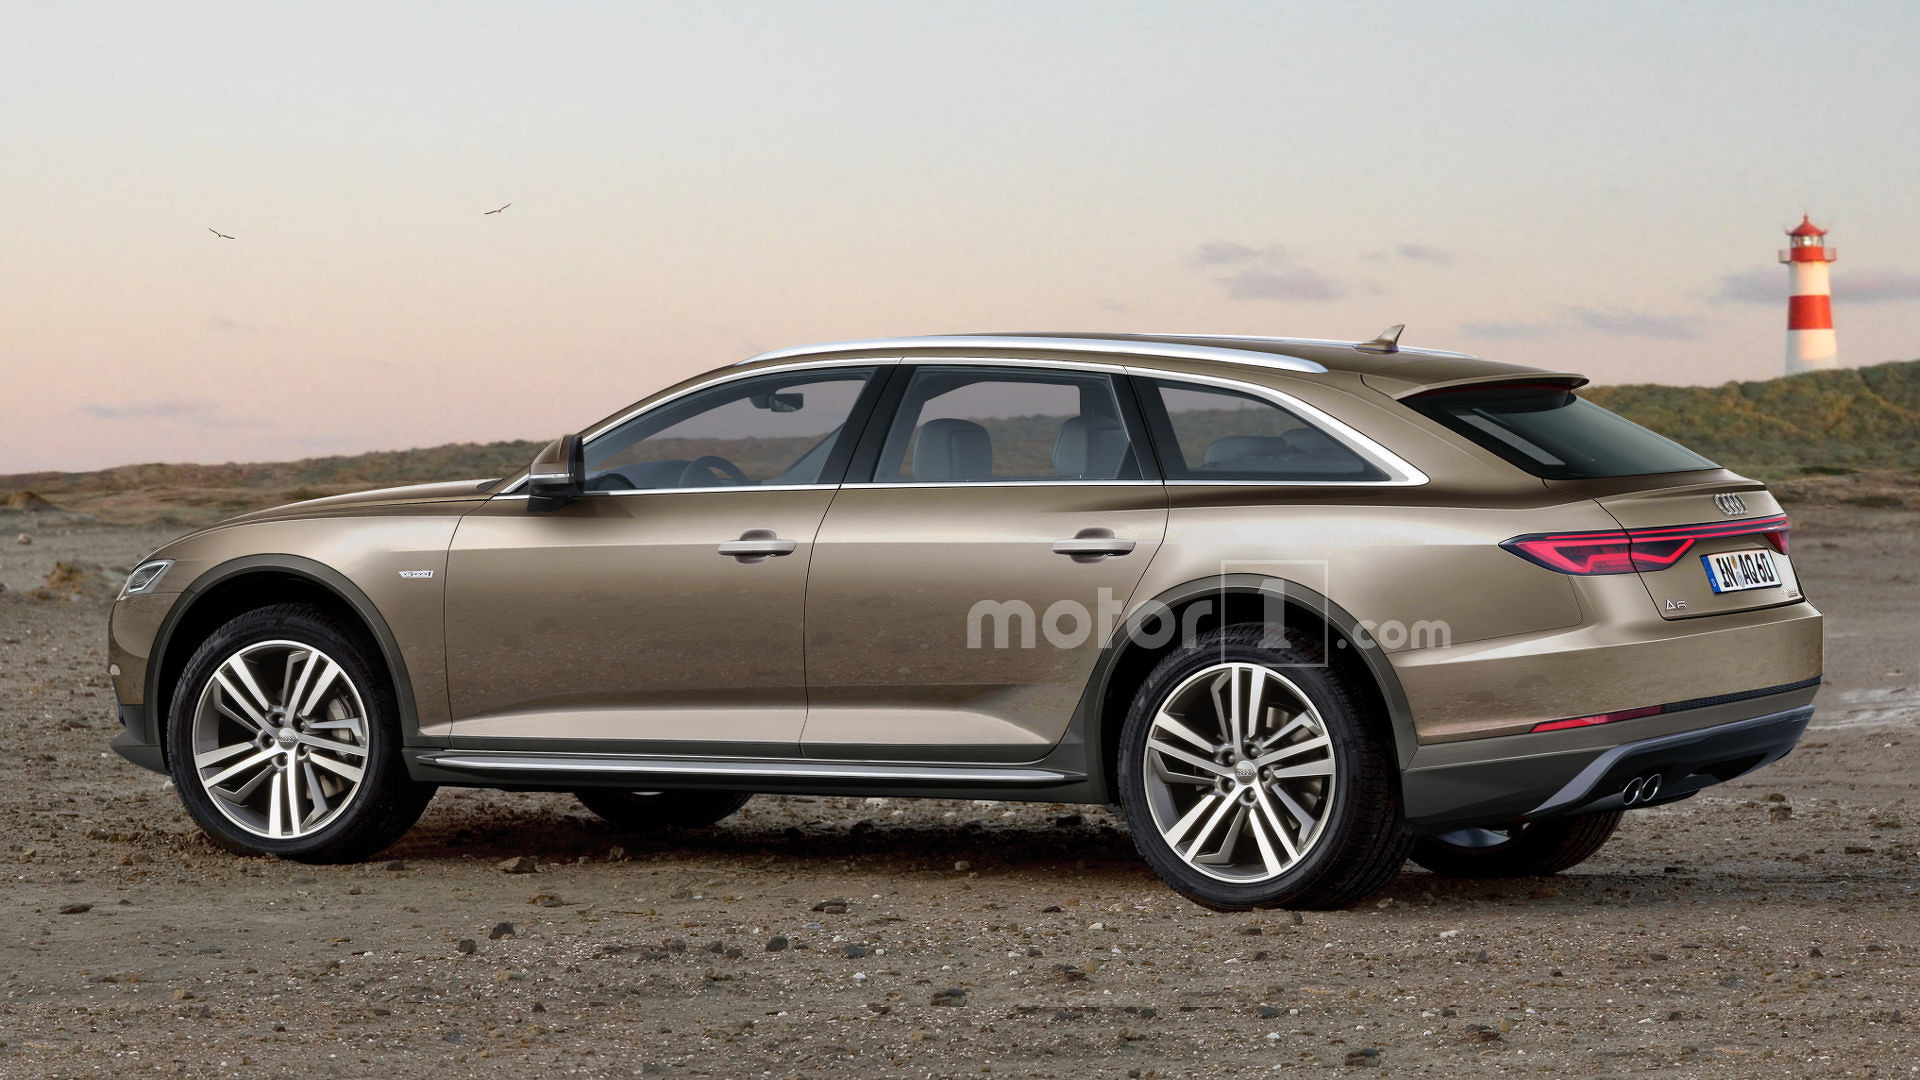 2018 Audi A7 >> Audi A6 Allroad Rendering Looks Ready To Get Dirty